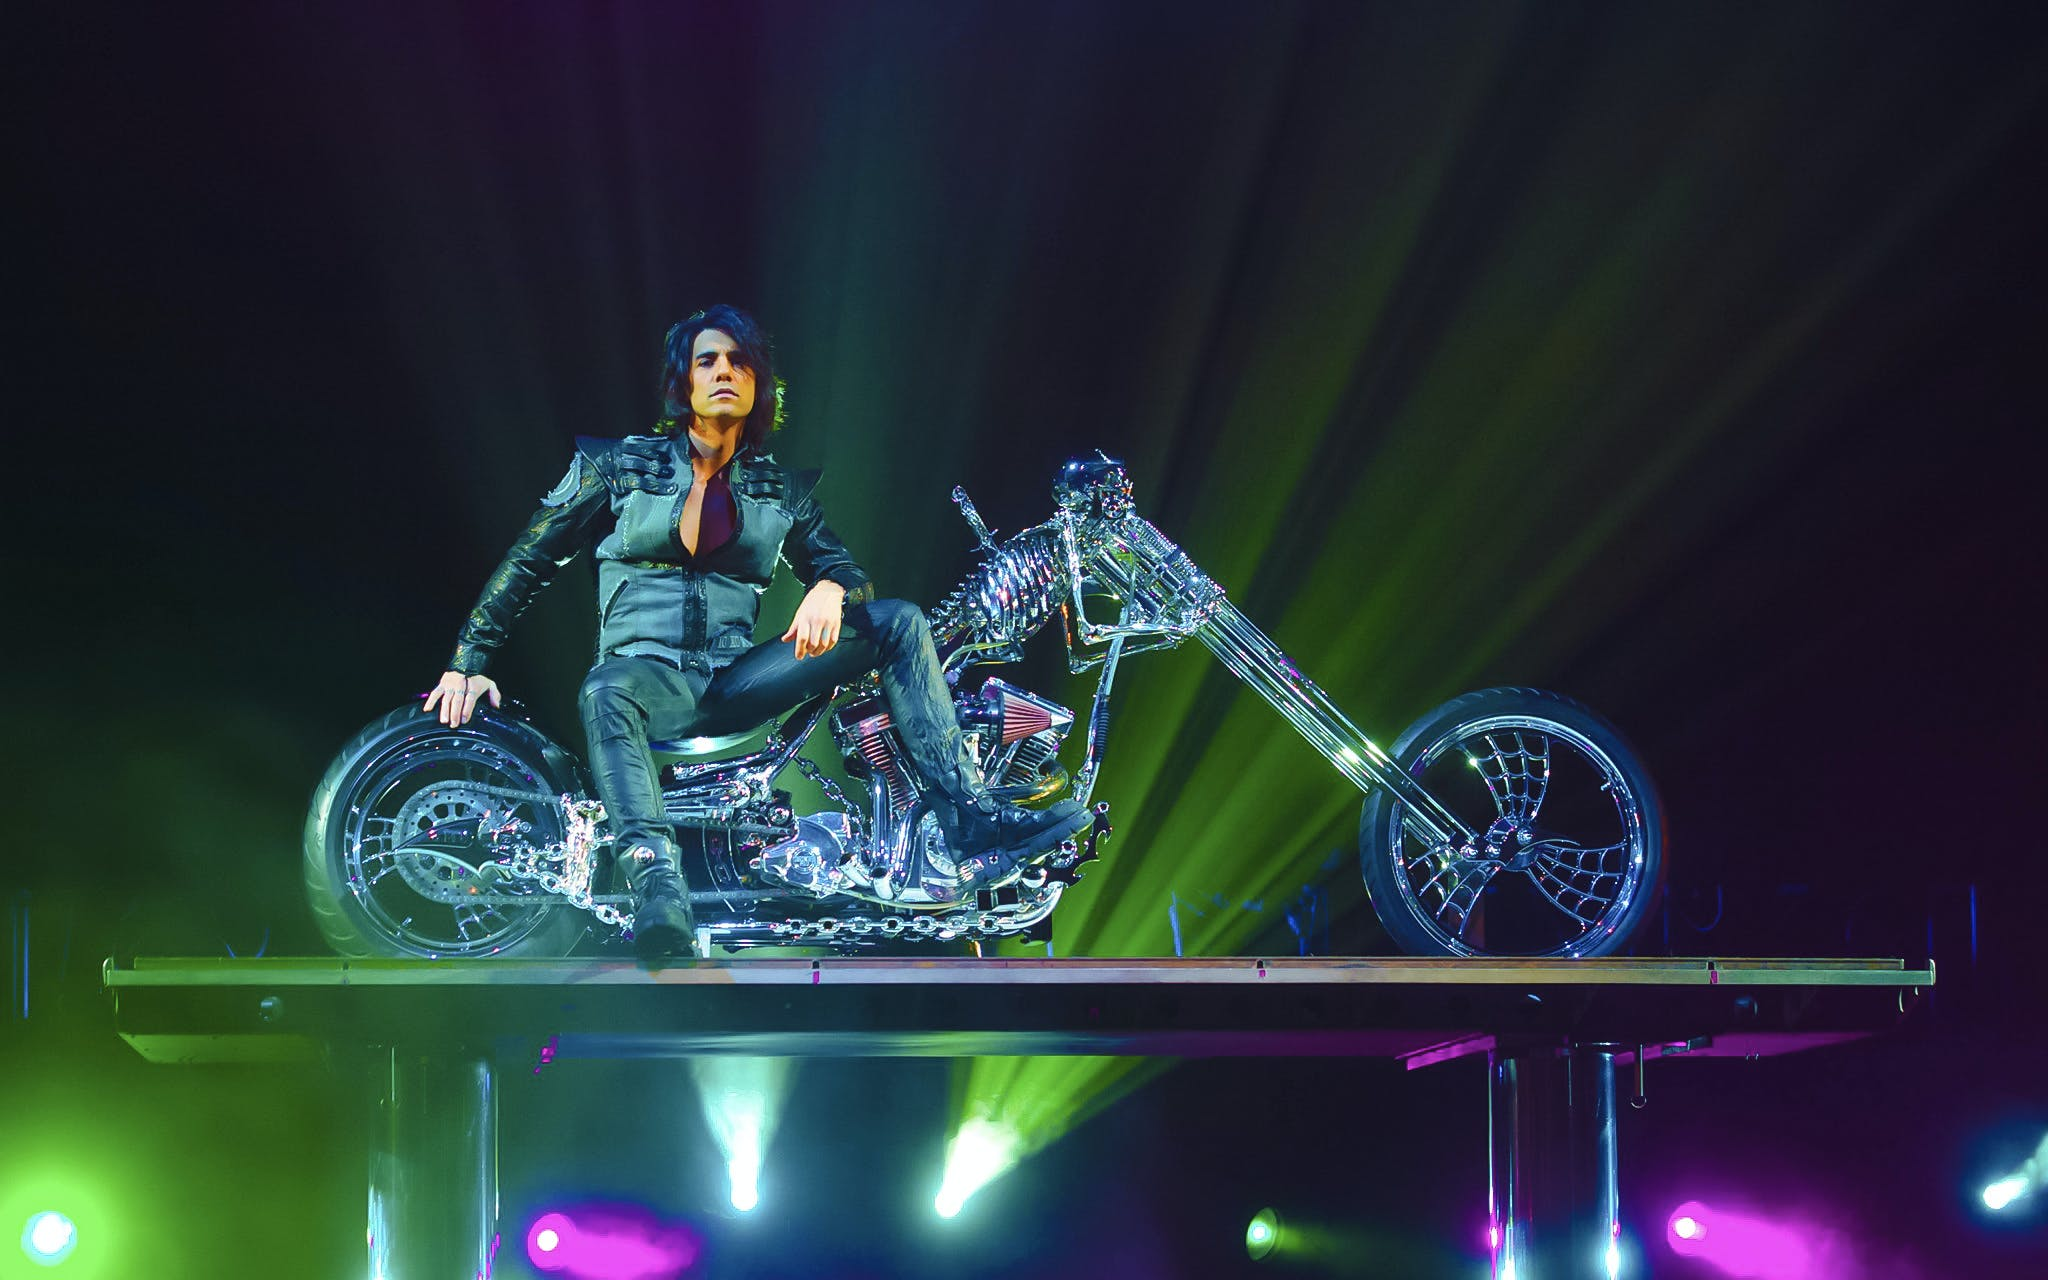 Criss Angel Mindfreak Live by Cirque du Soleil